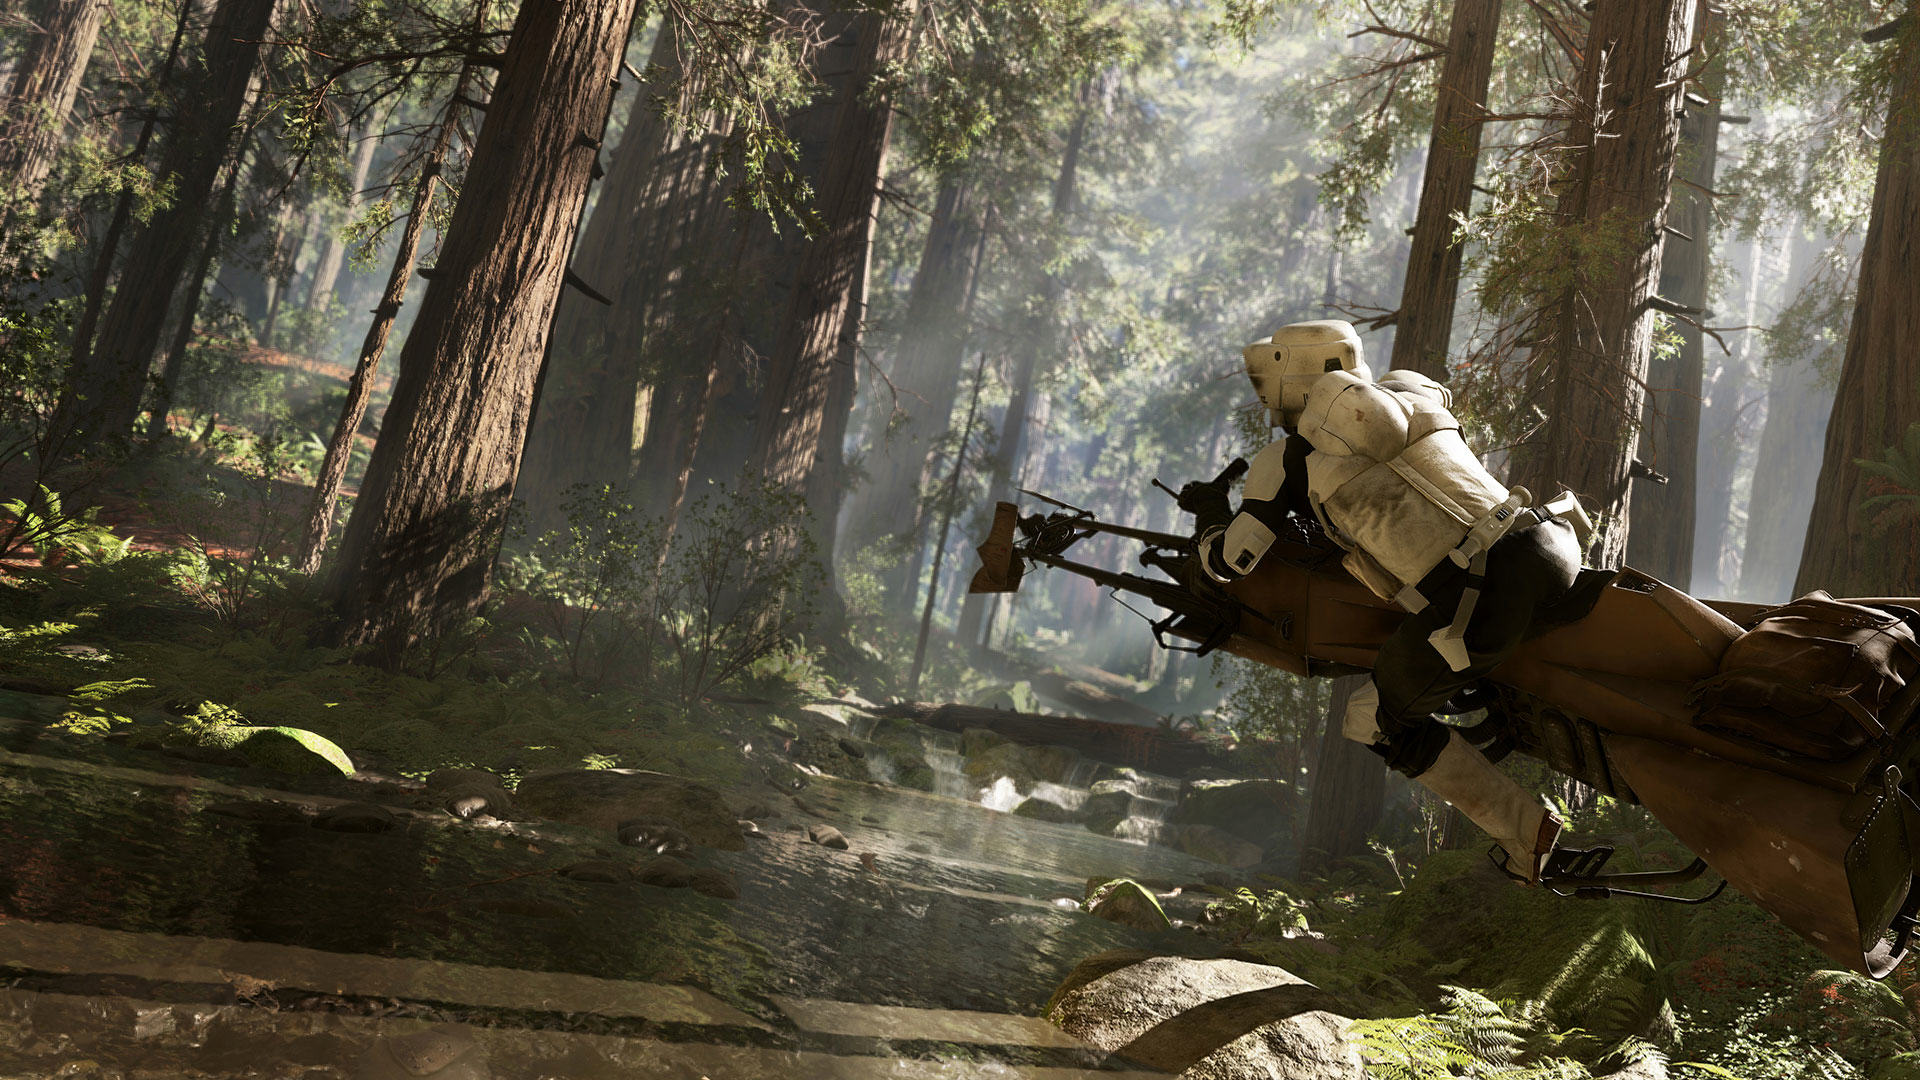 New Star Wars Battlefront Footage Shows Heroes, Maps And More UNILAD 2848321 battlefront25407